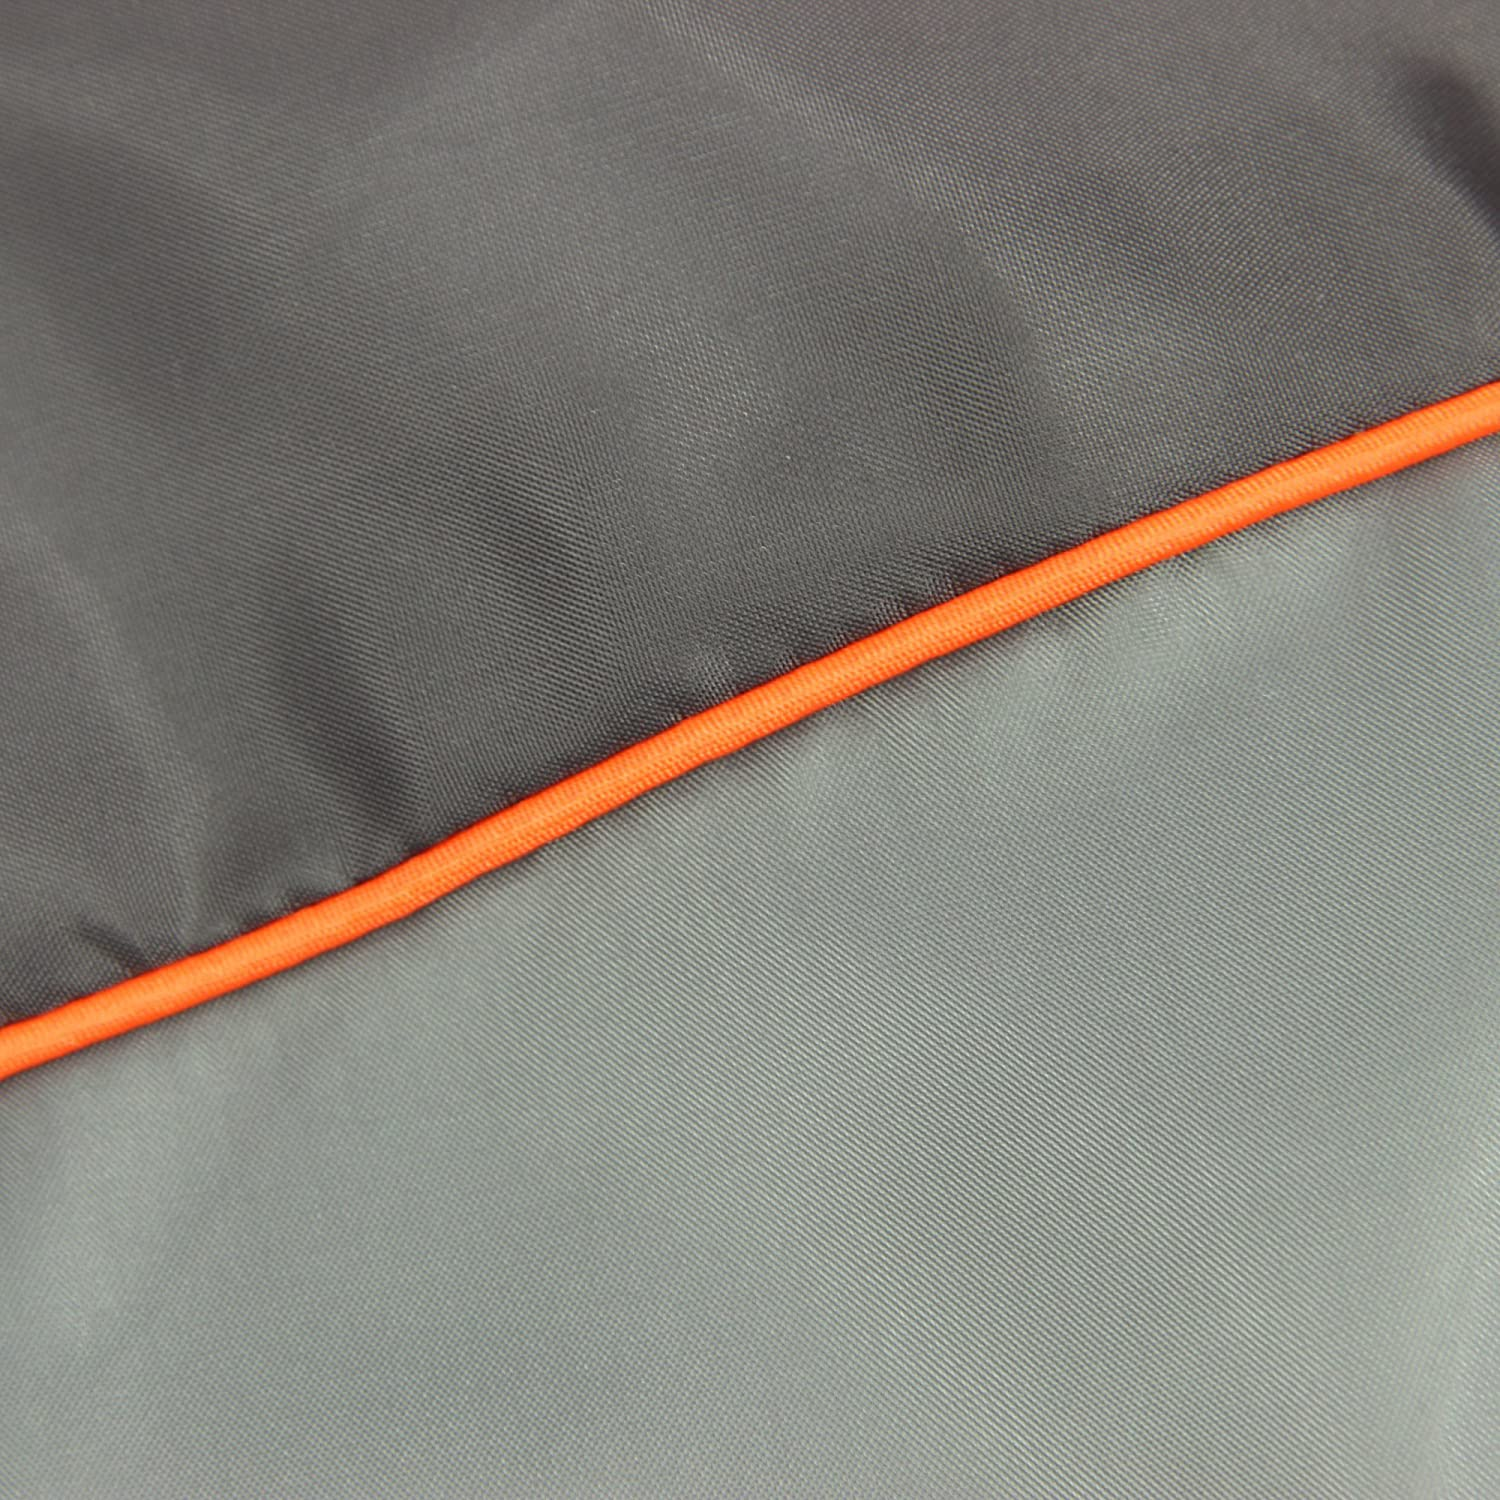 Image of Material on a Portal Outdoor Sleeping Bag